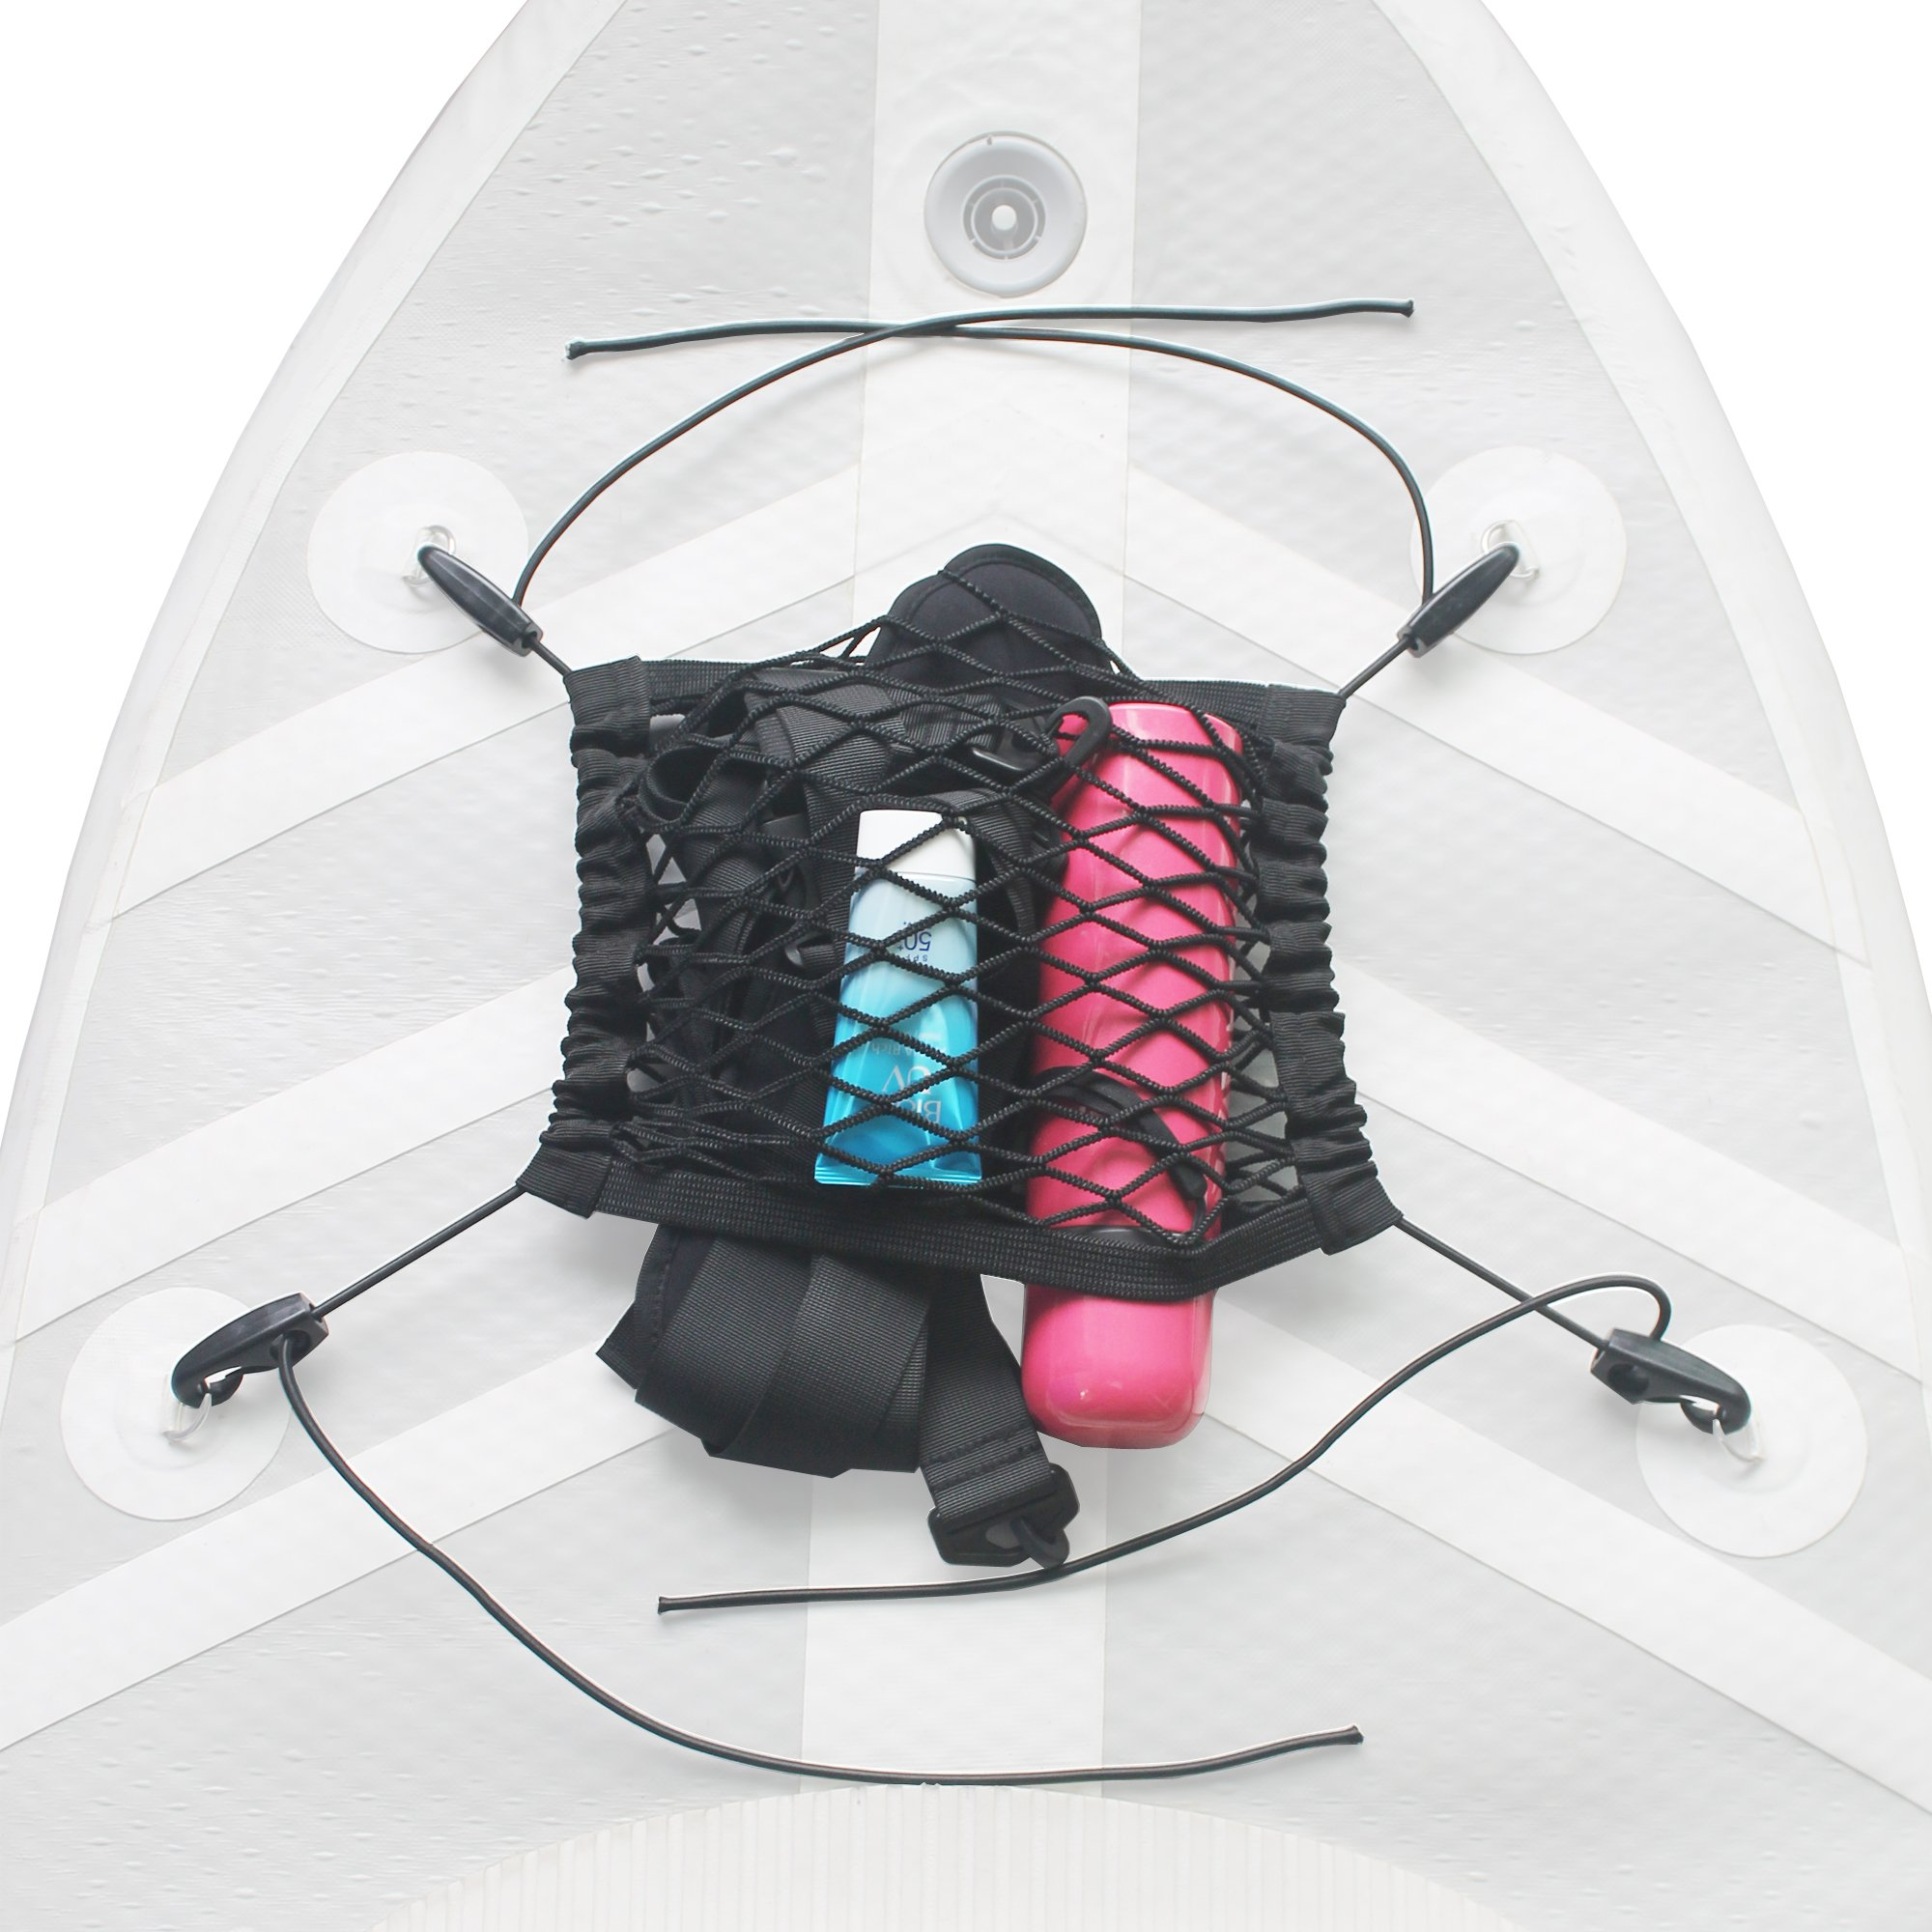 YYST SUP Mesh Deck Bag Deck Storage Bag SUP Storage Back Stand Up Paddle Board Pouch Bag Pocket for SUP Paddleboard Deck-no D Ring Patch